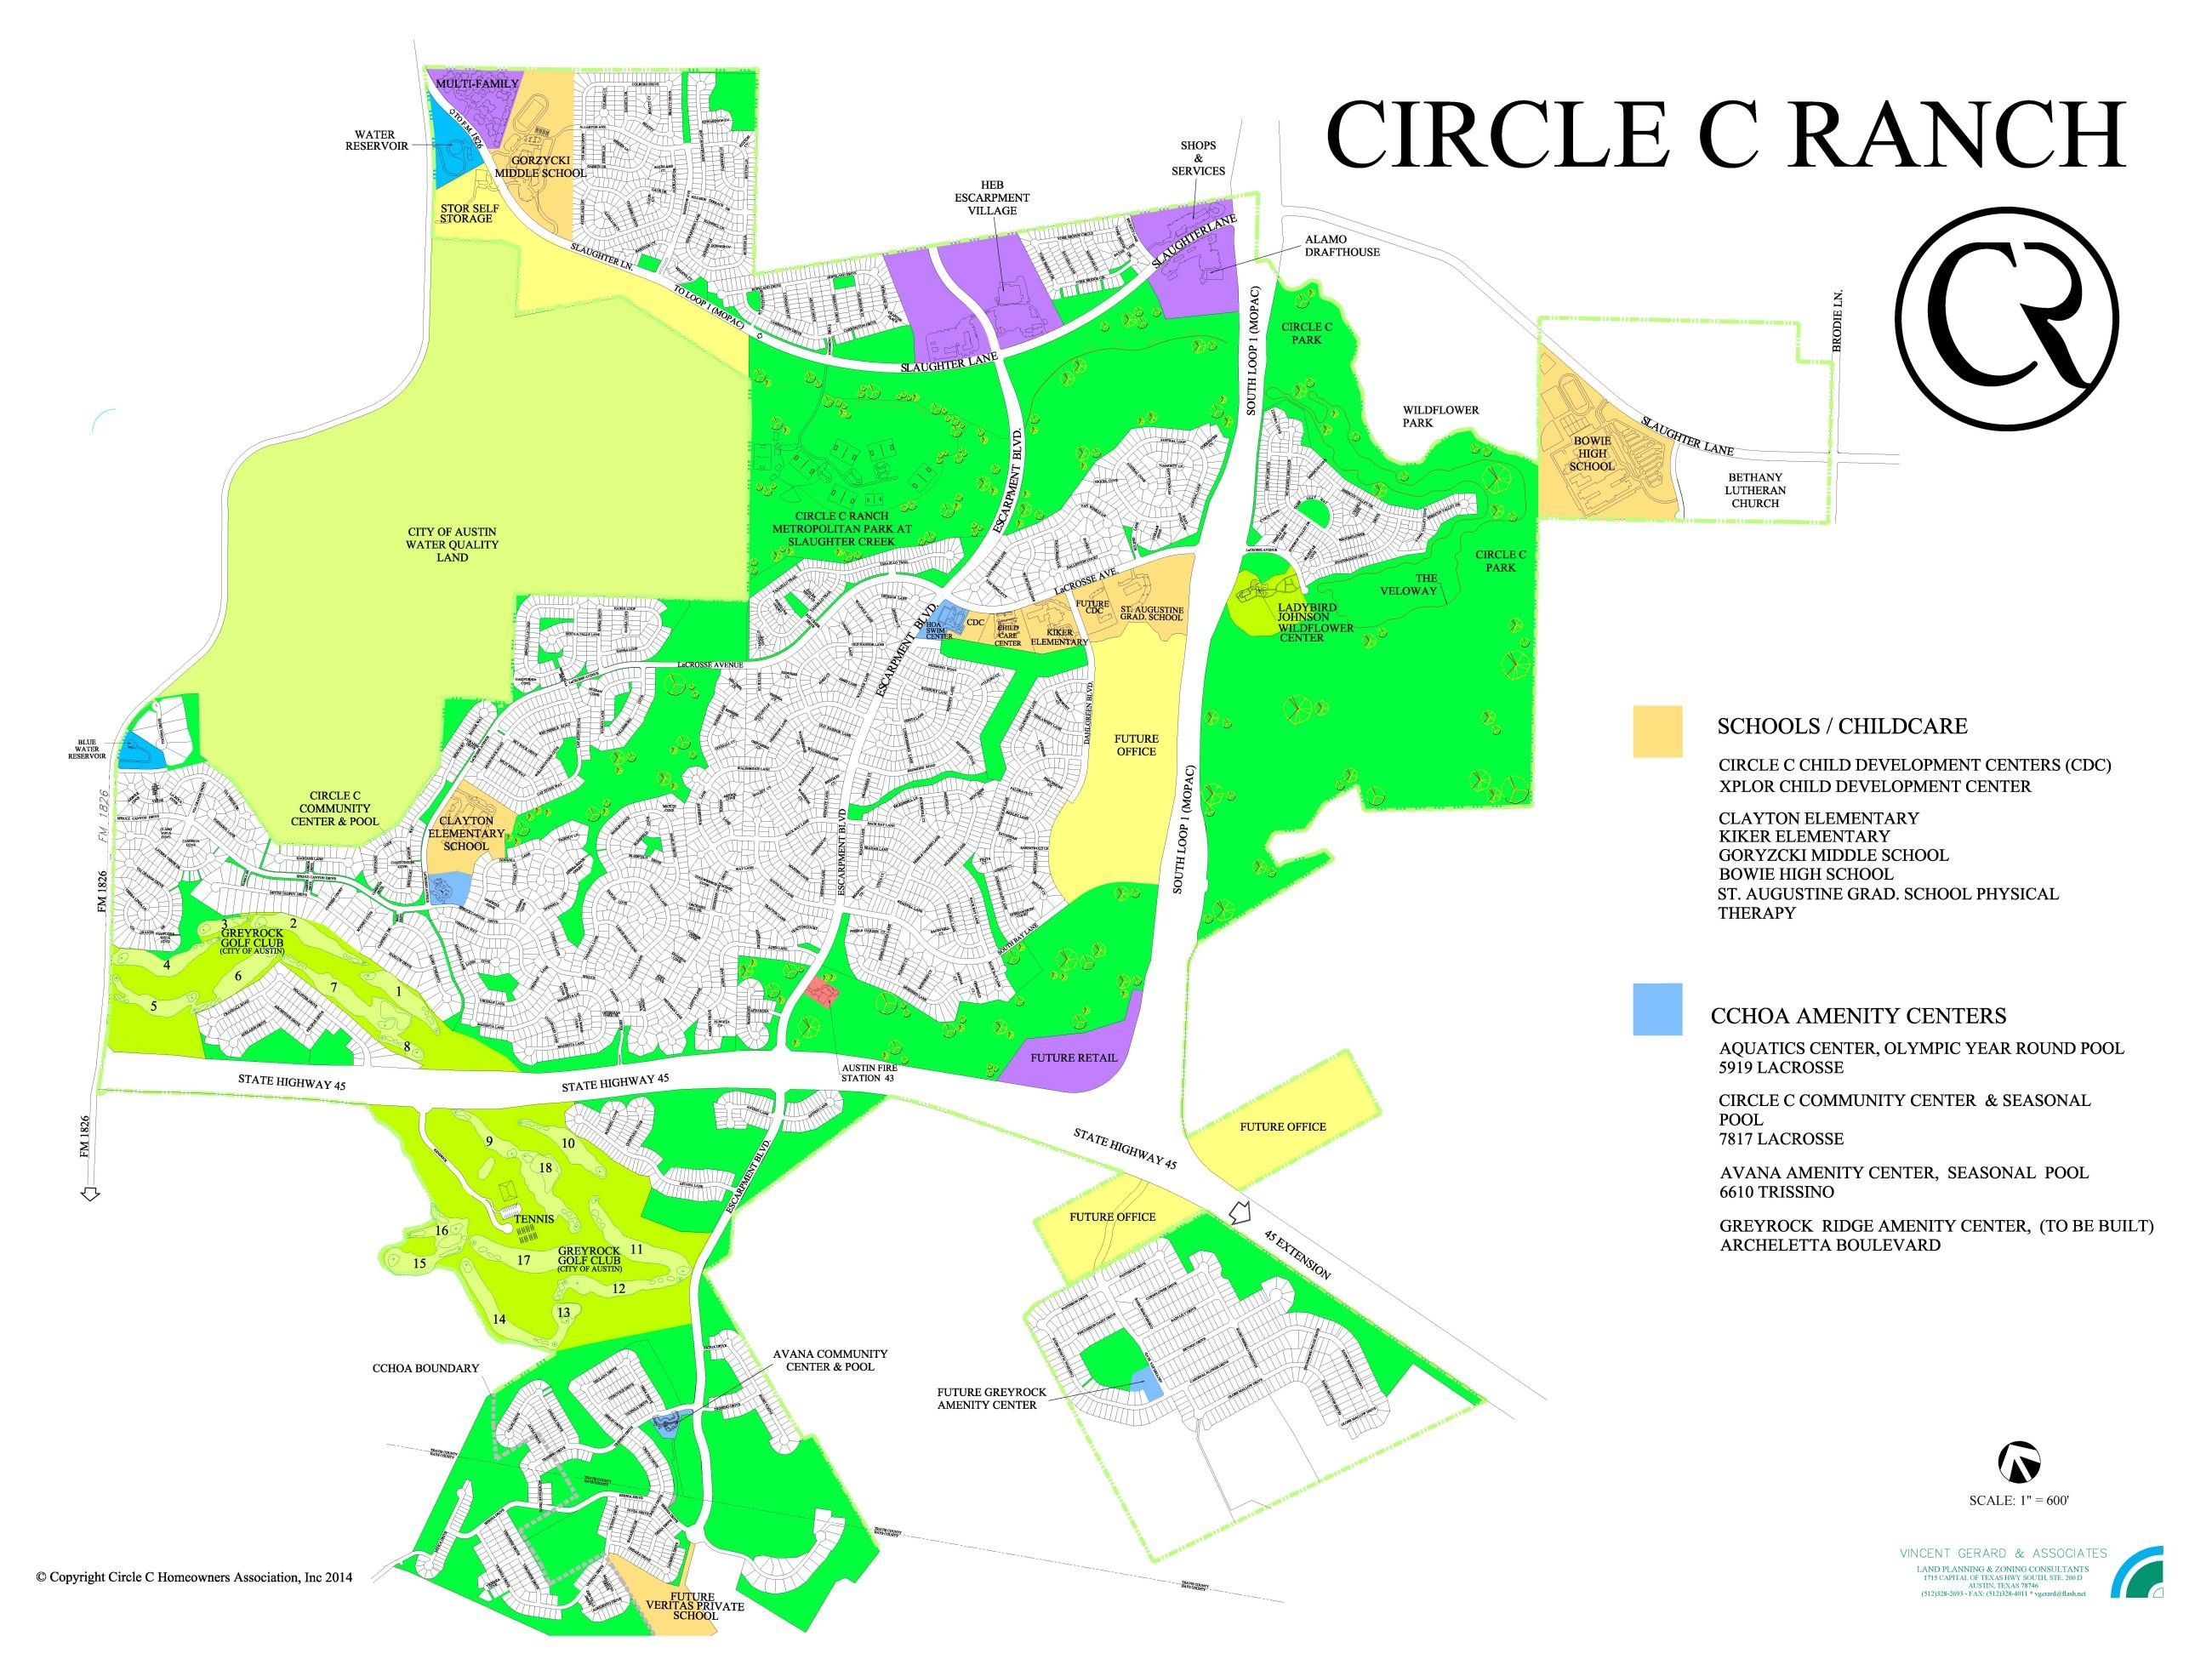 Map of Circle C Ranch